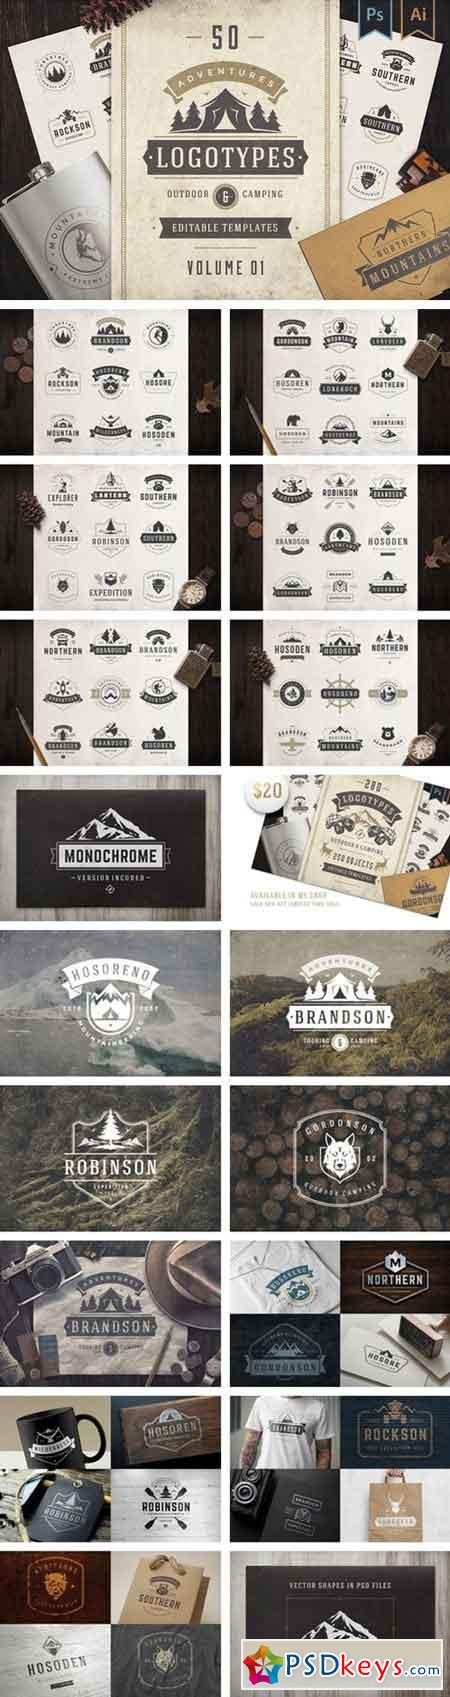 50 Outdoor logos and badges 2092836